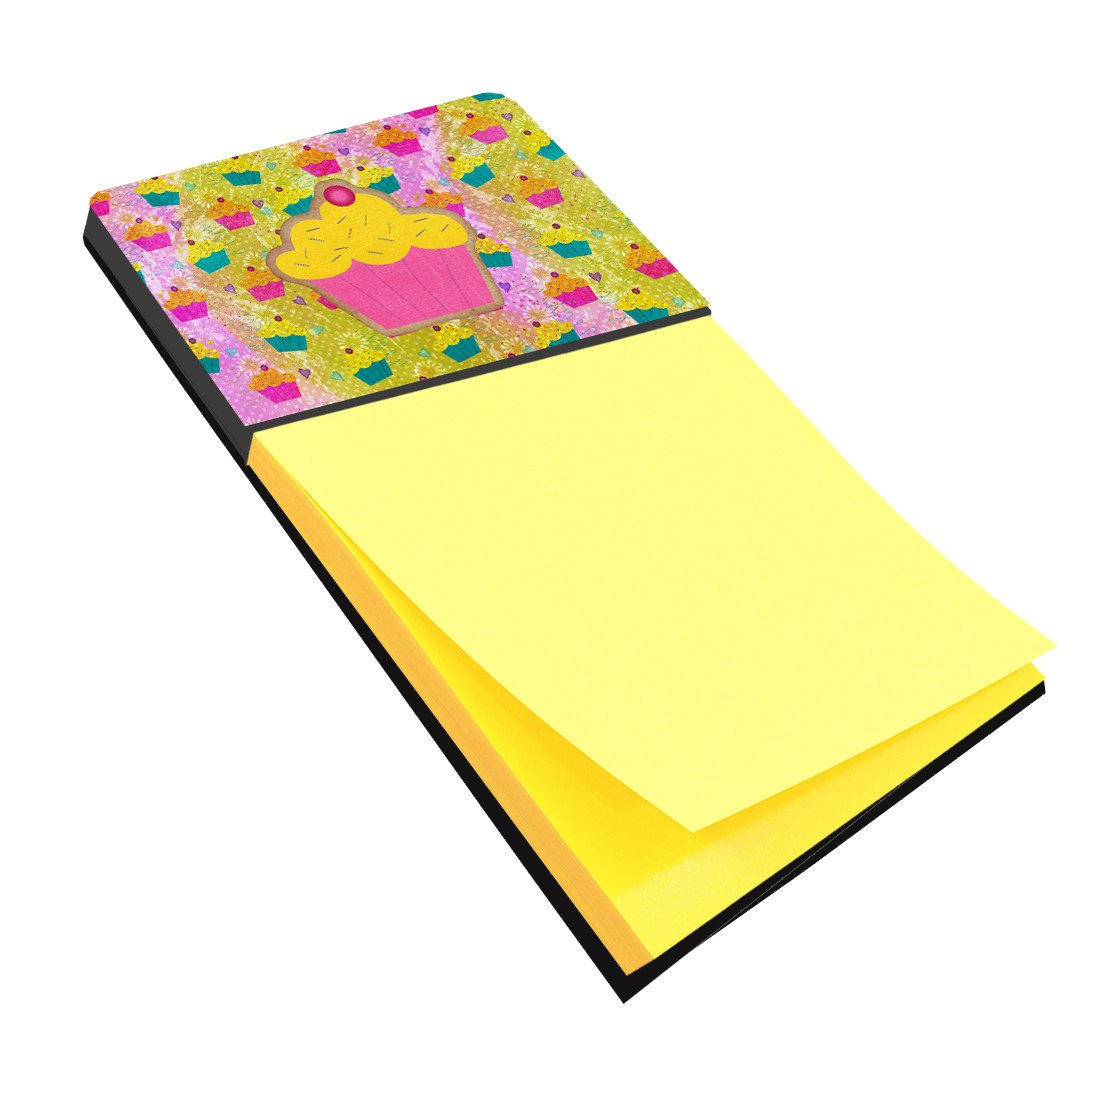 Cupcake Refiillable Sticky Note Holder or Postit Note Dispenser SB3003SN by Caroline's Treasures